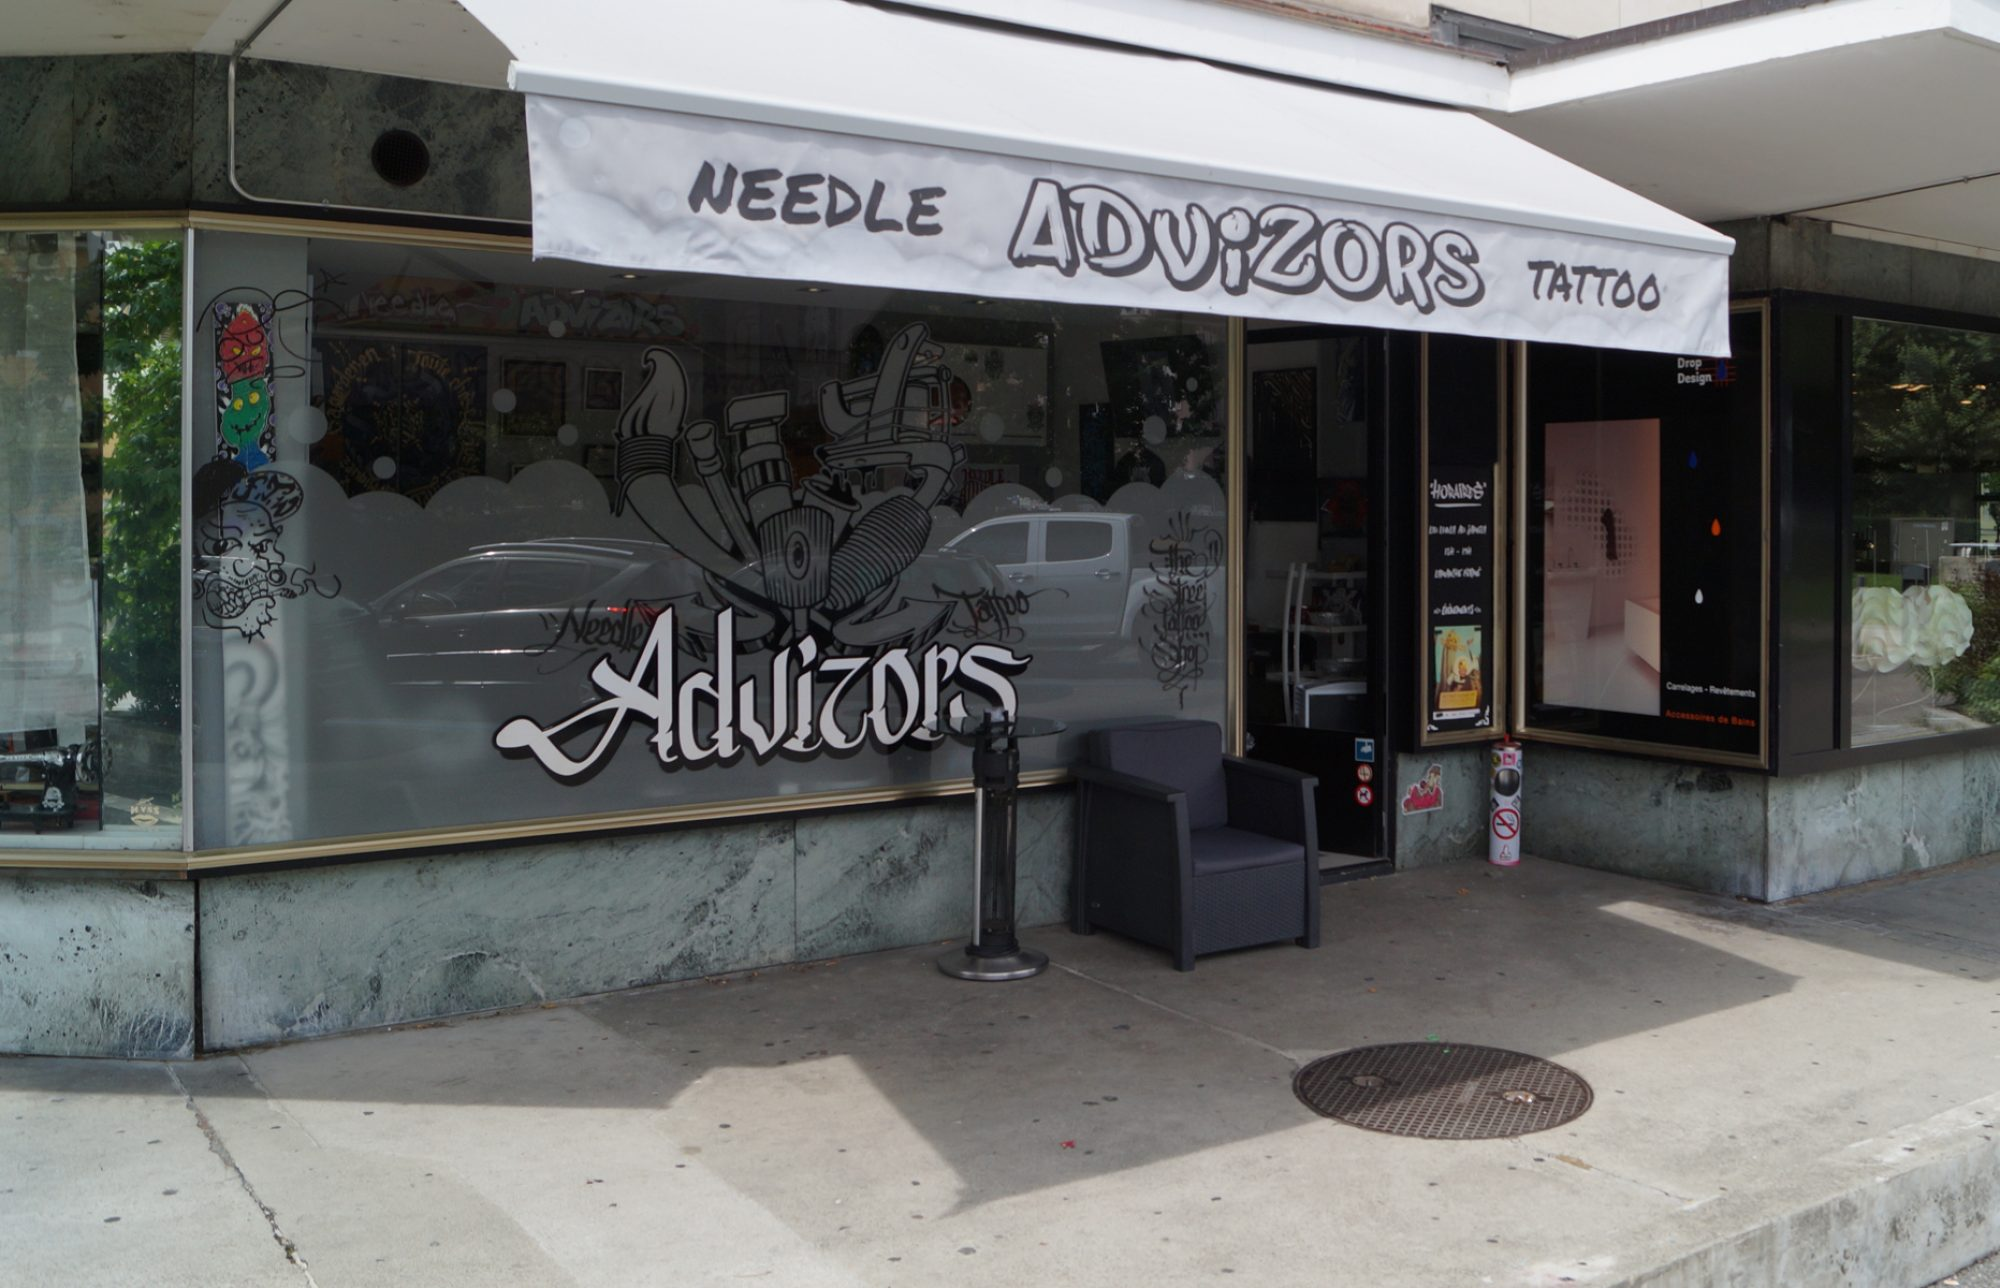 needle advizors